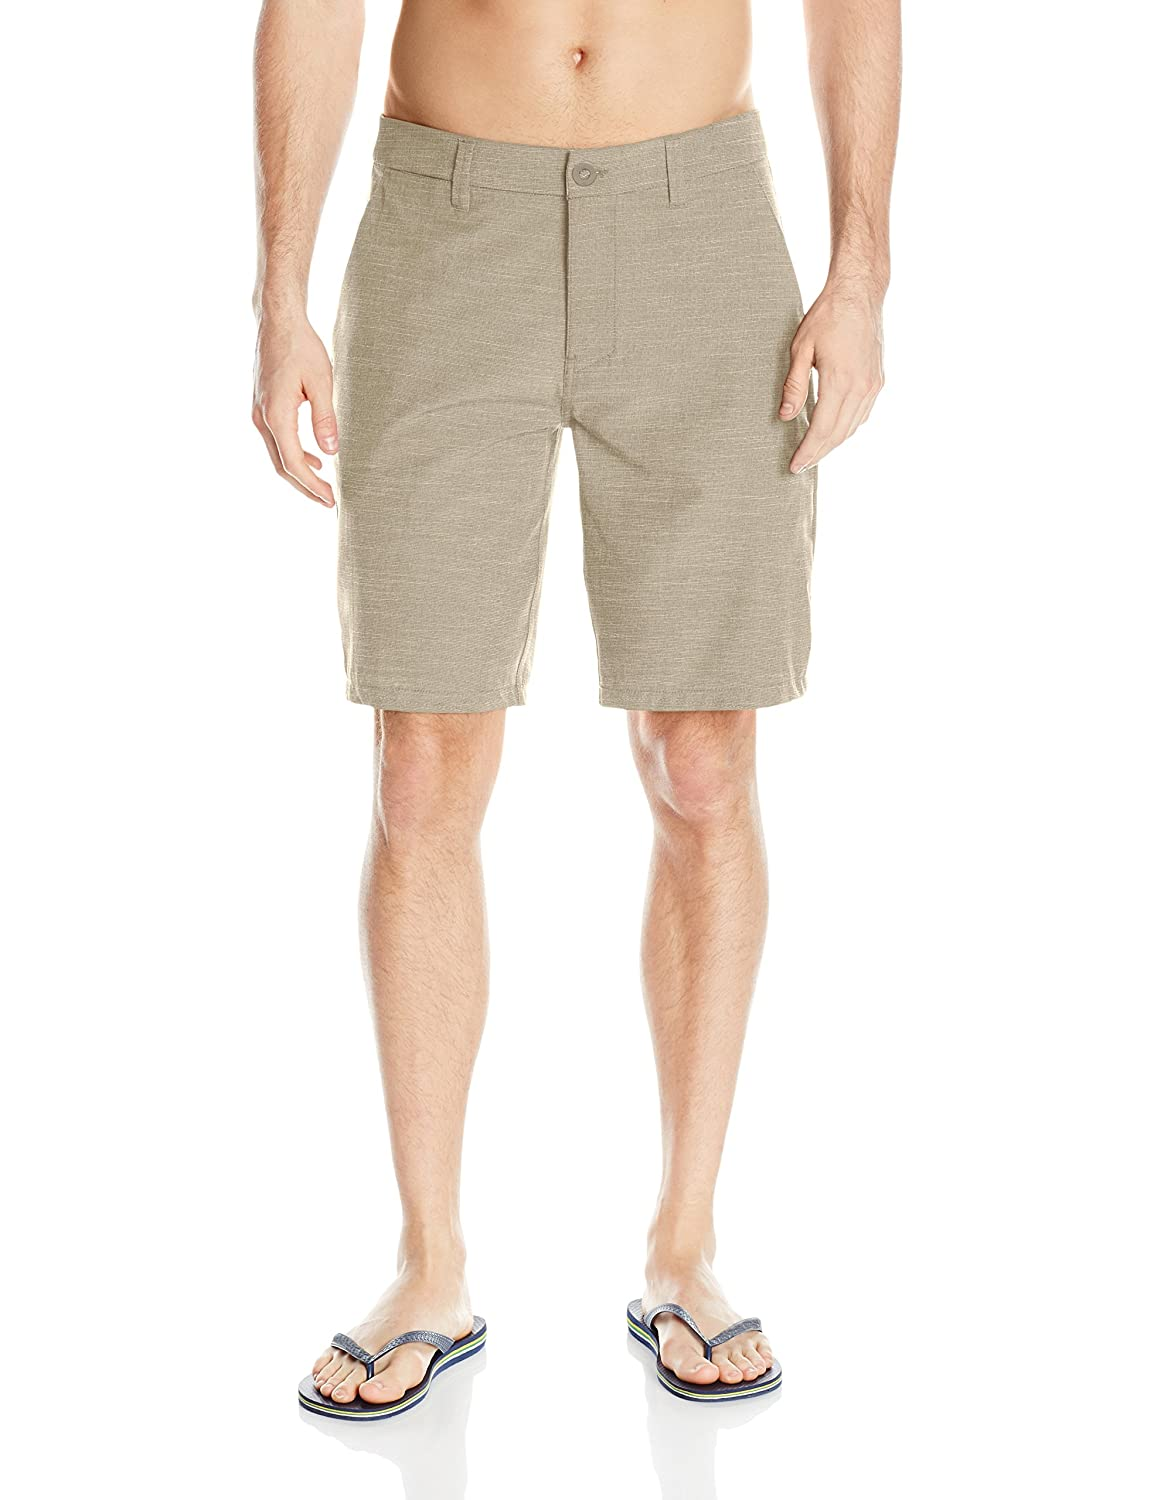 Rip Curl Men's Mirage Jackson